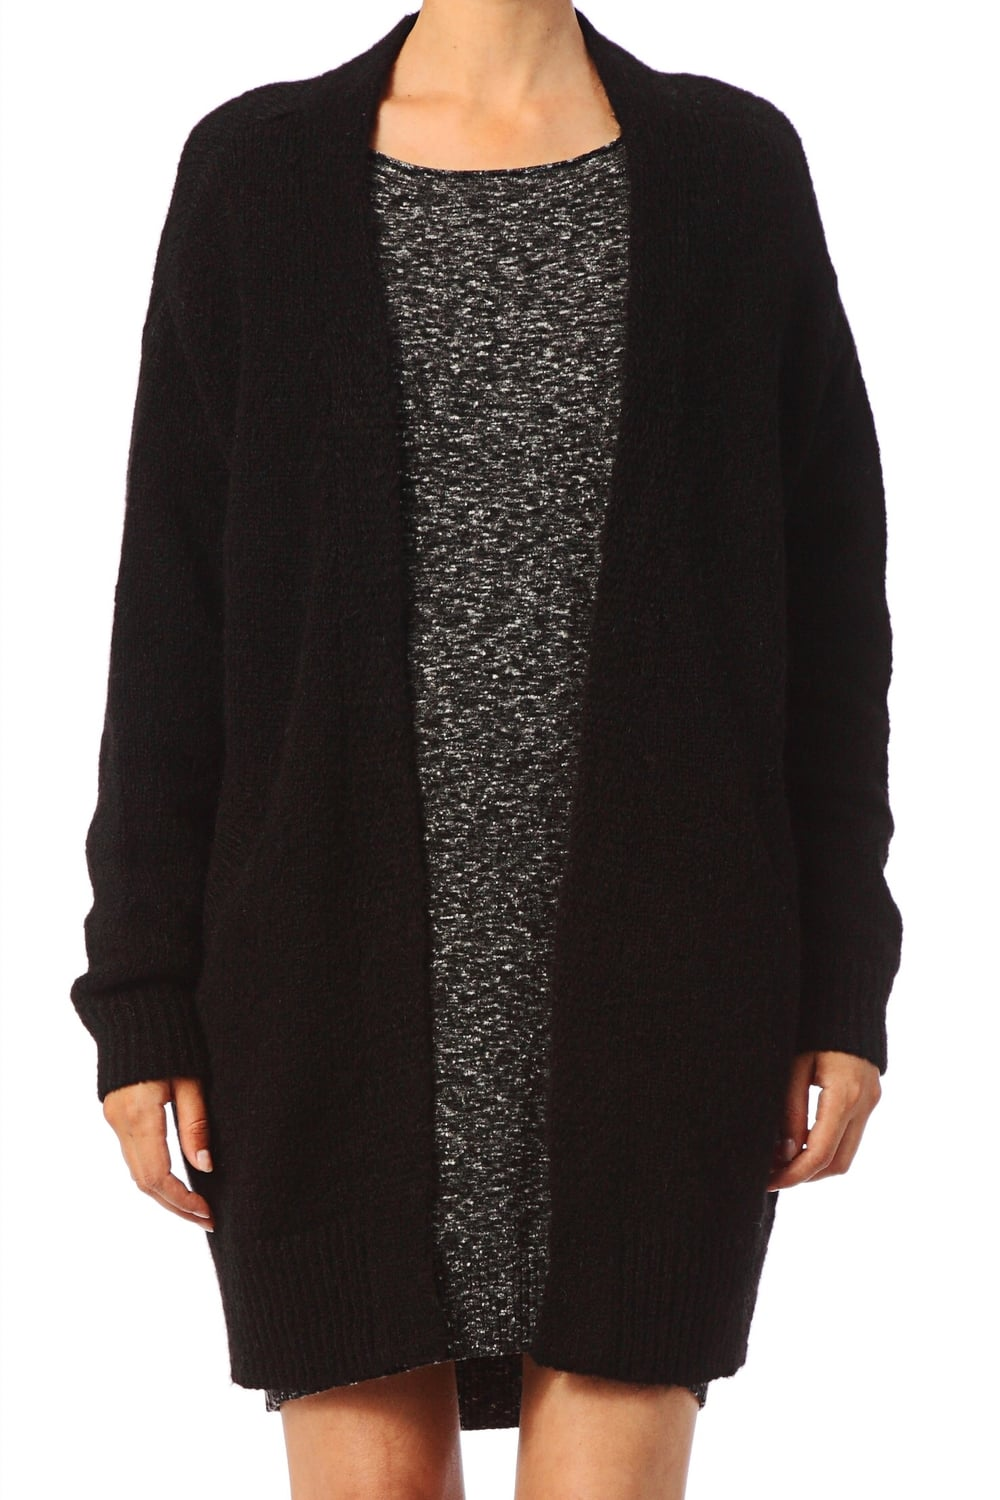 Cardigan love - even full price!